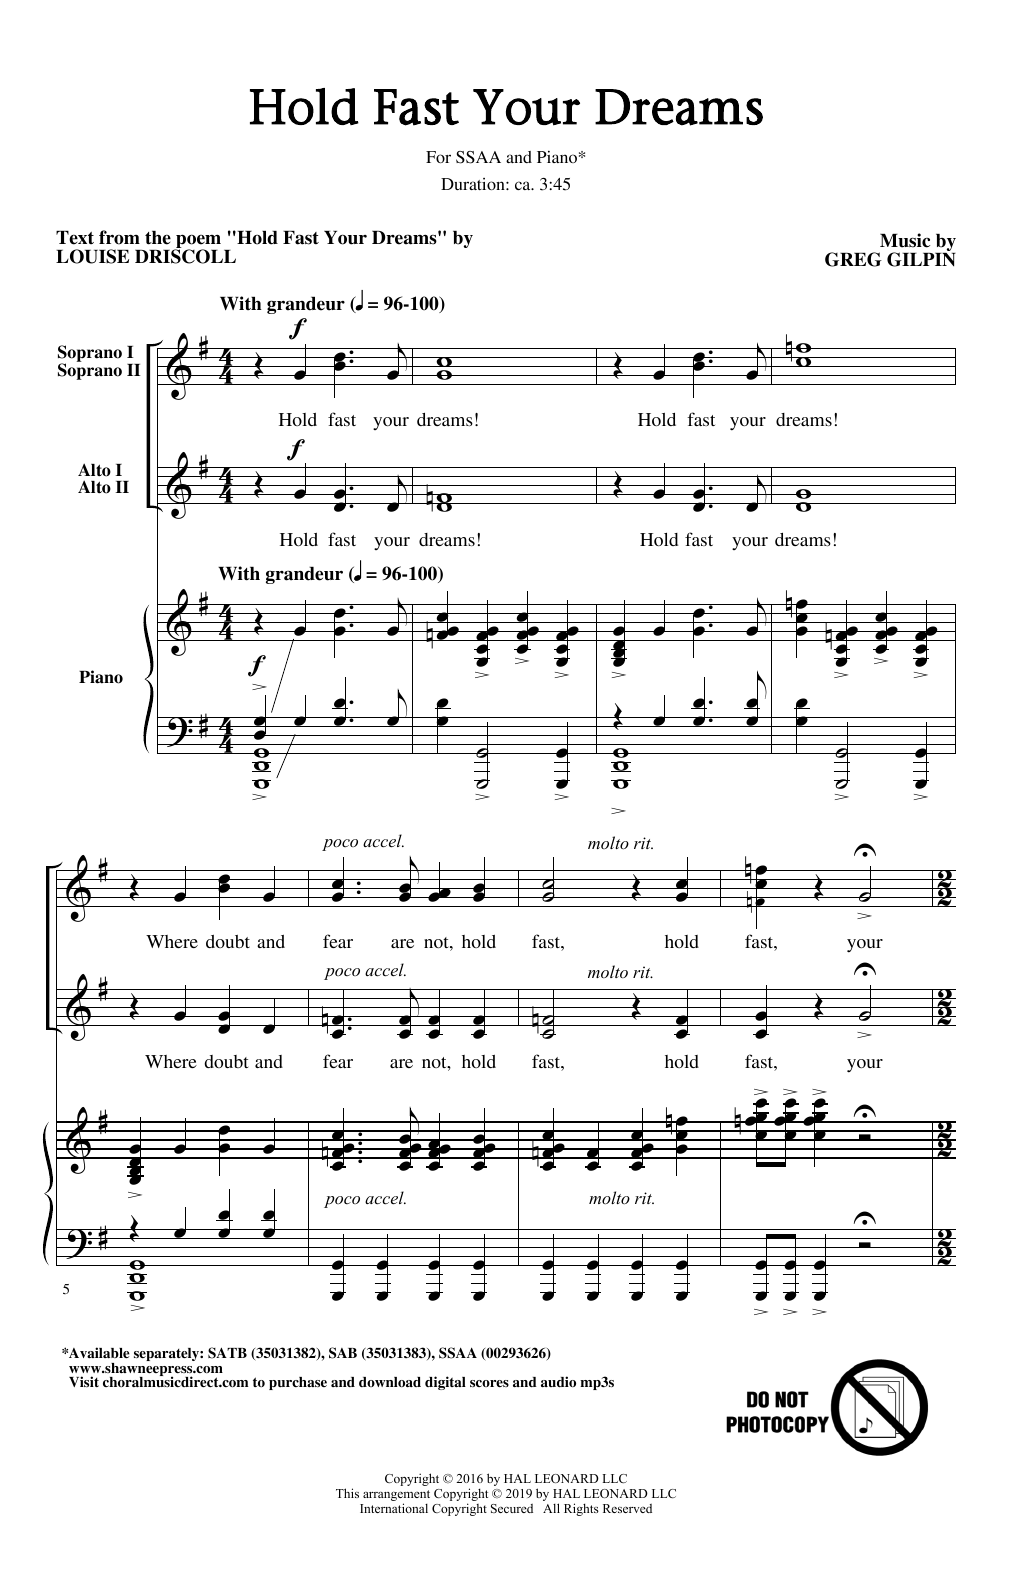 Hold Fast Your Dreams! sheet music